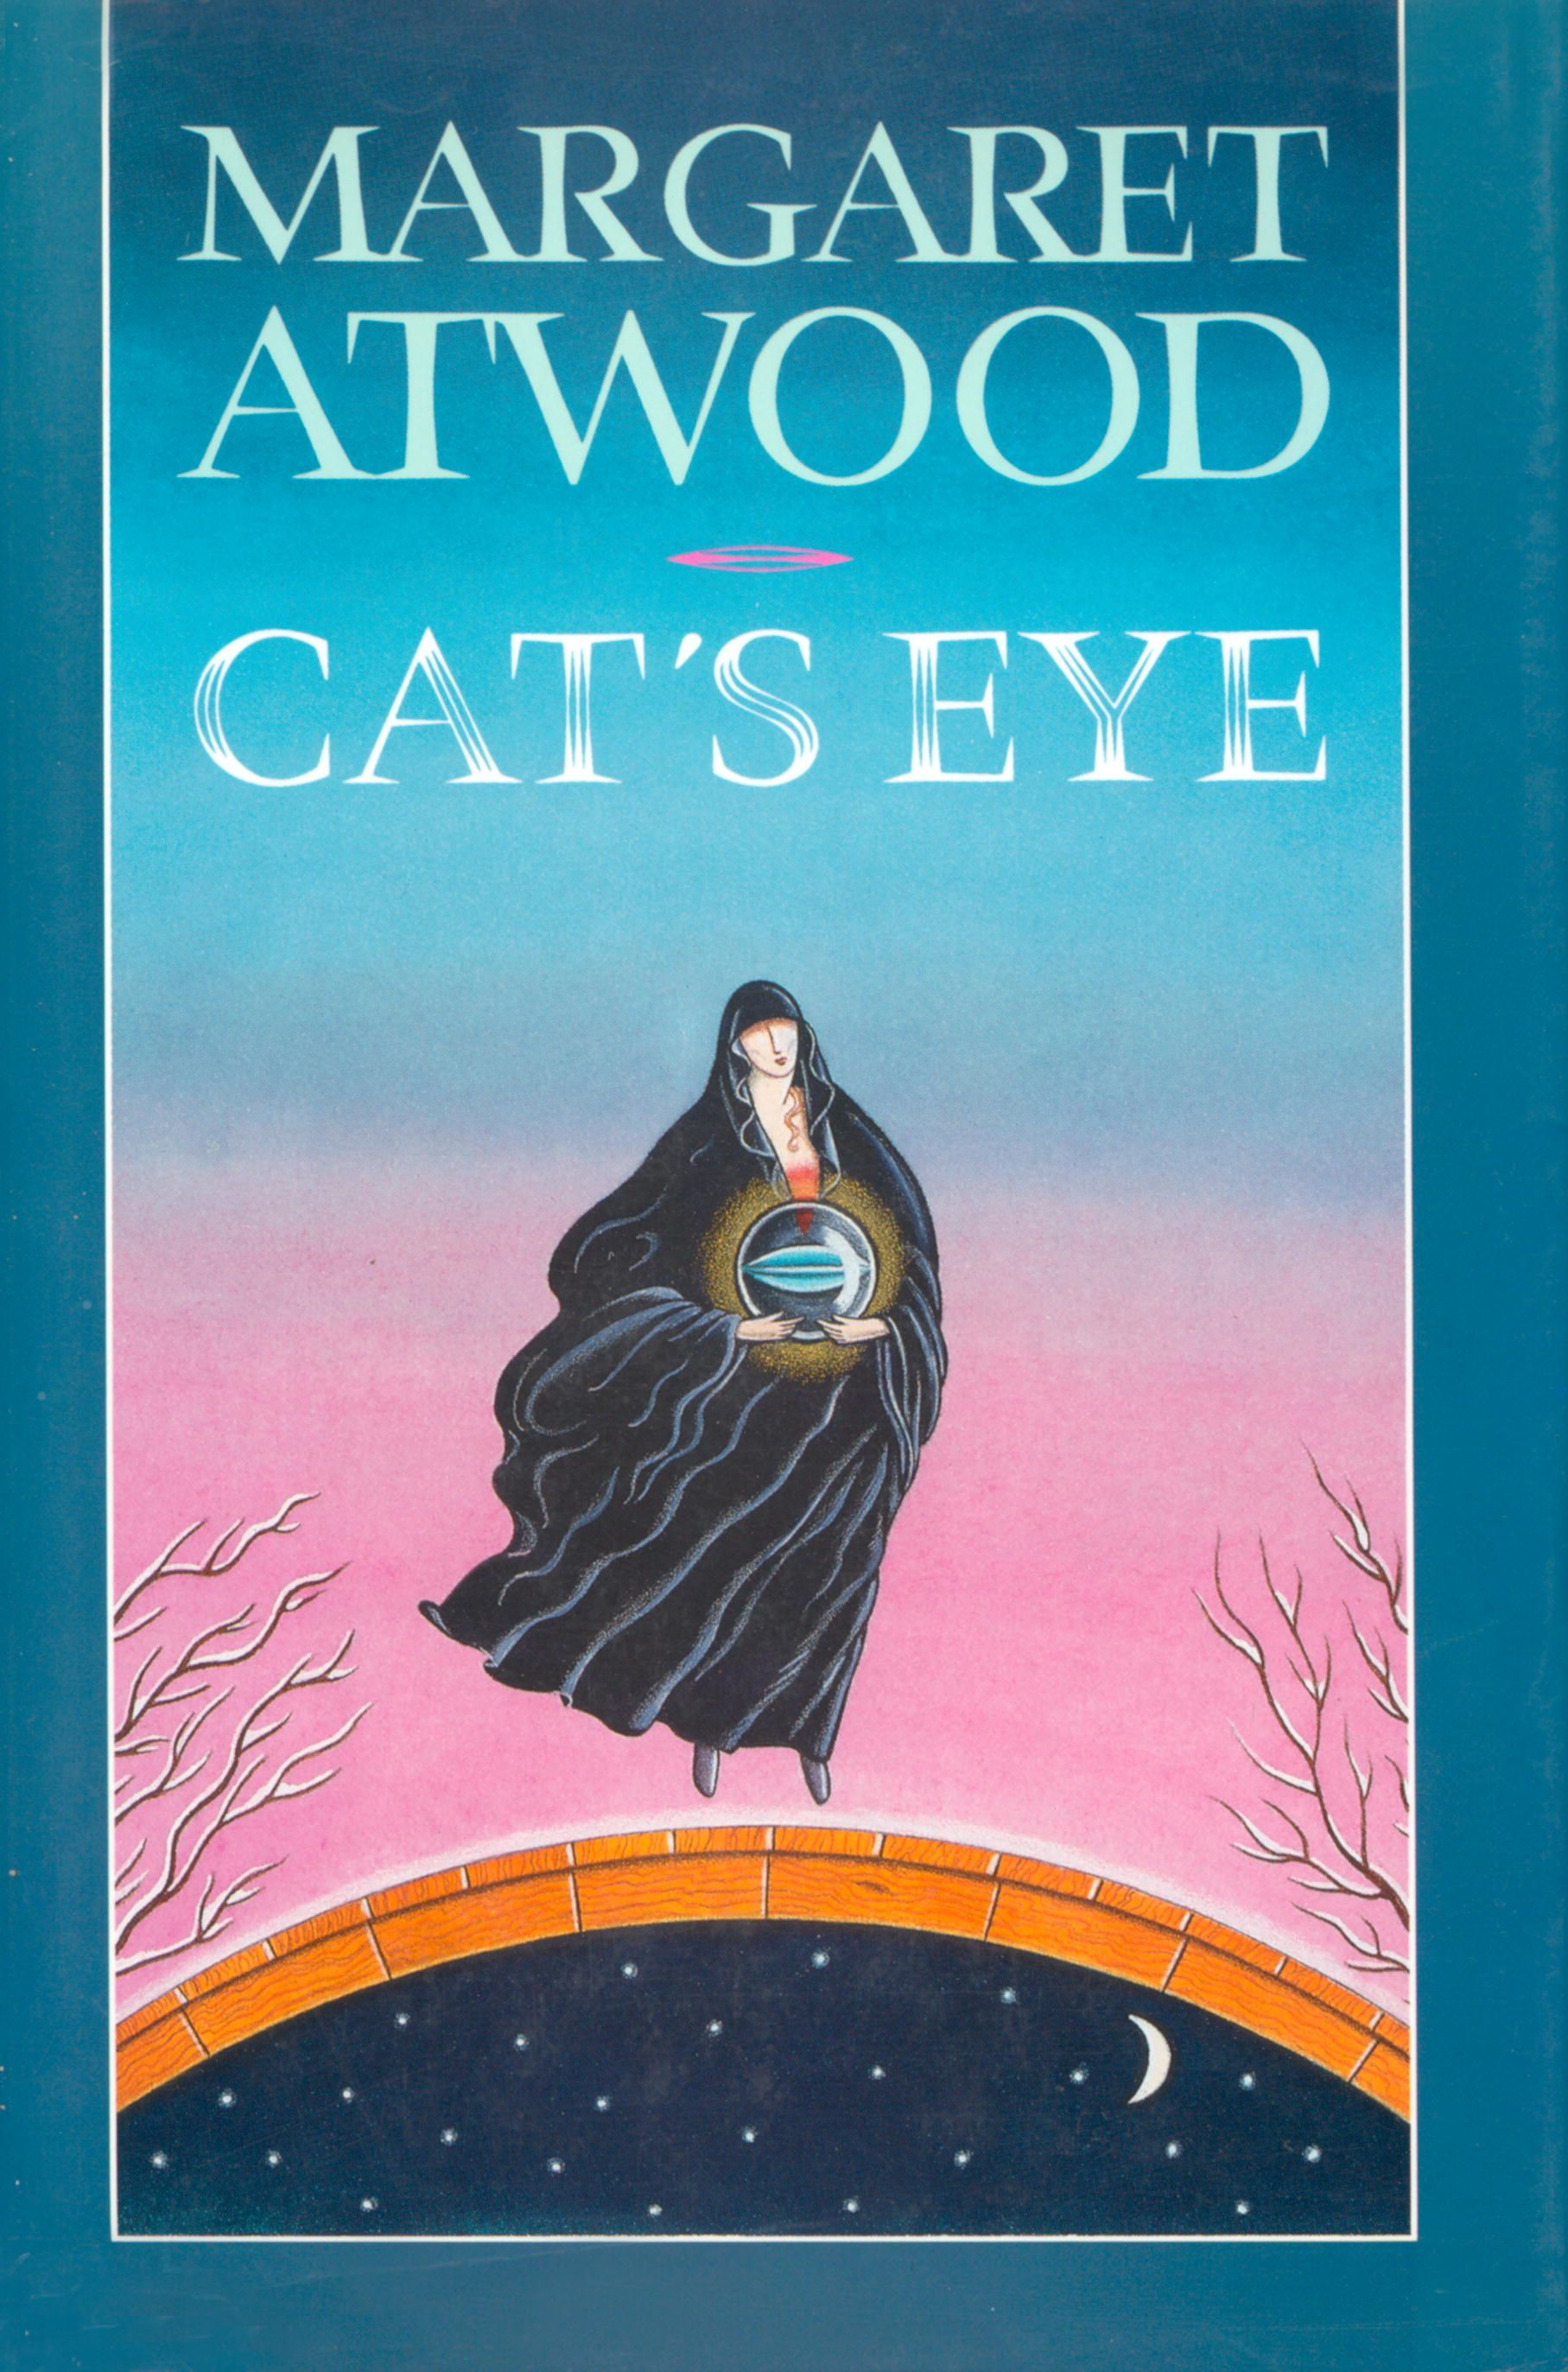 1989 book club book cats eye by margaret atwood to see this 1989 book club book cats eye by margaret atwood to see this book in fandeluxe Image collections